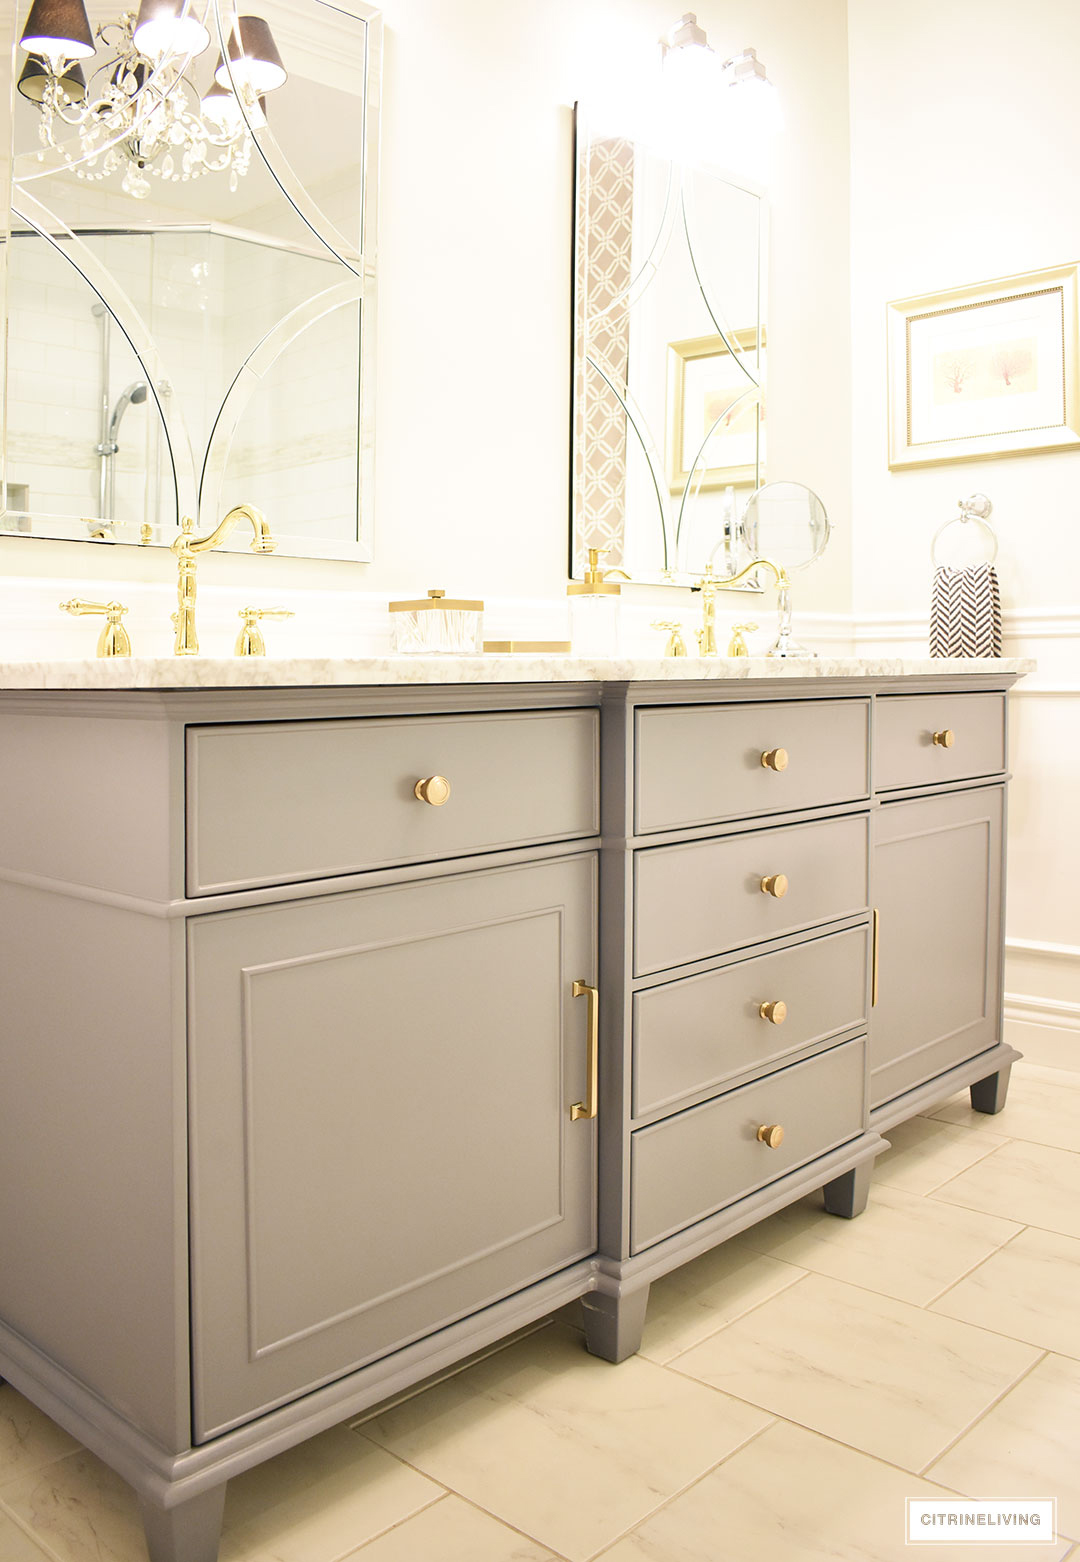 Gorgeous gray vanity with beautiful brass hardware and faucets - our master bathroom makeover is underway!